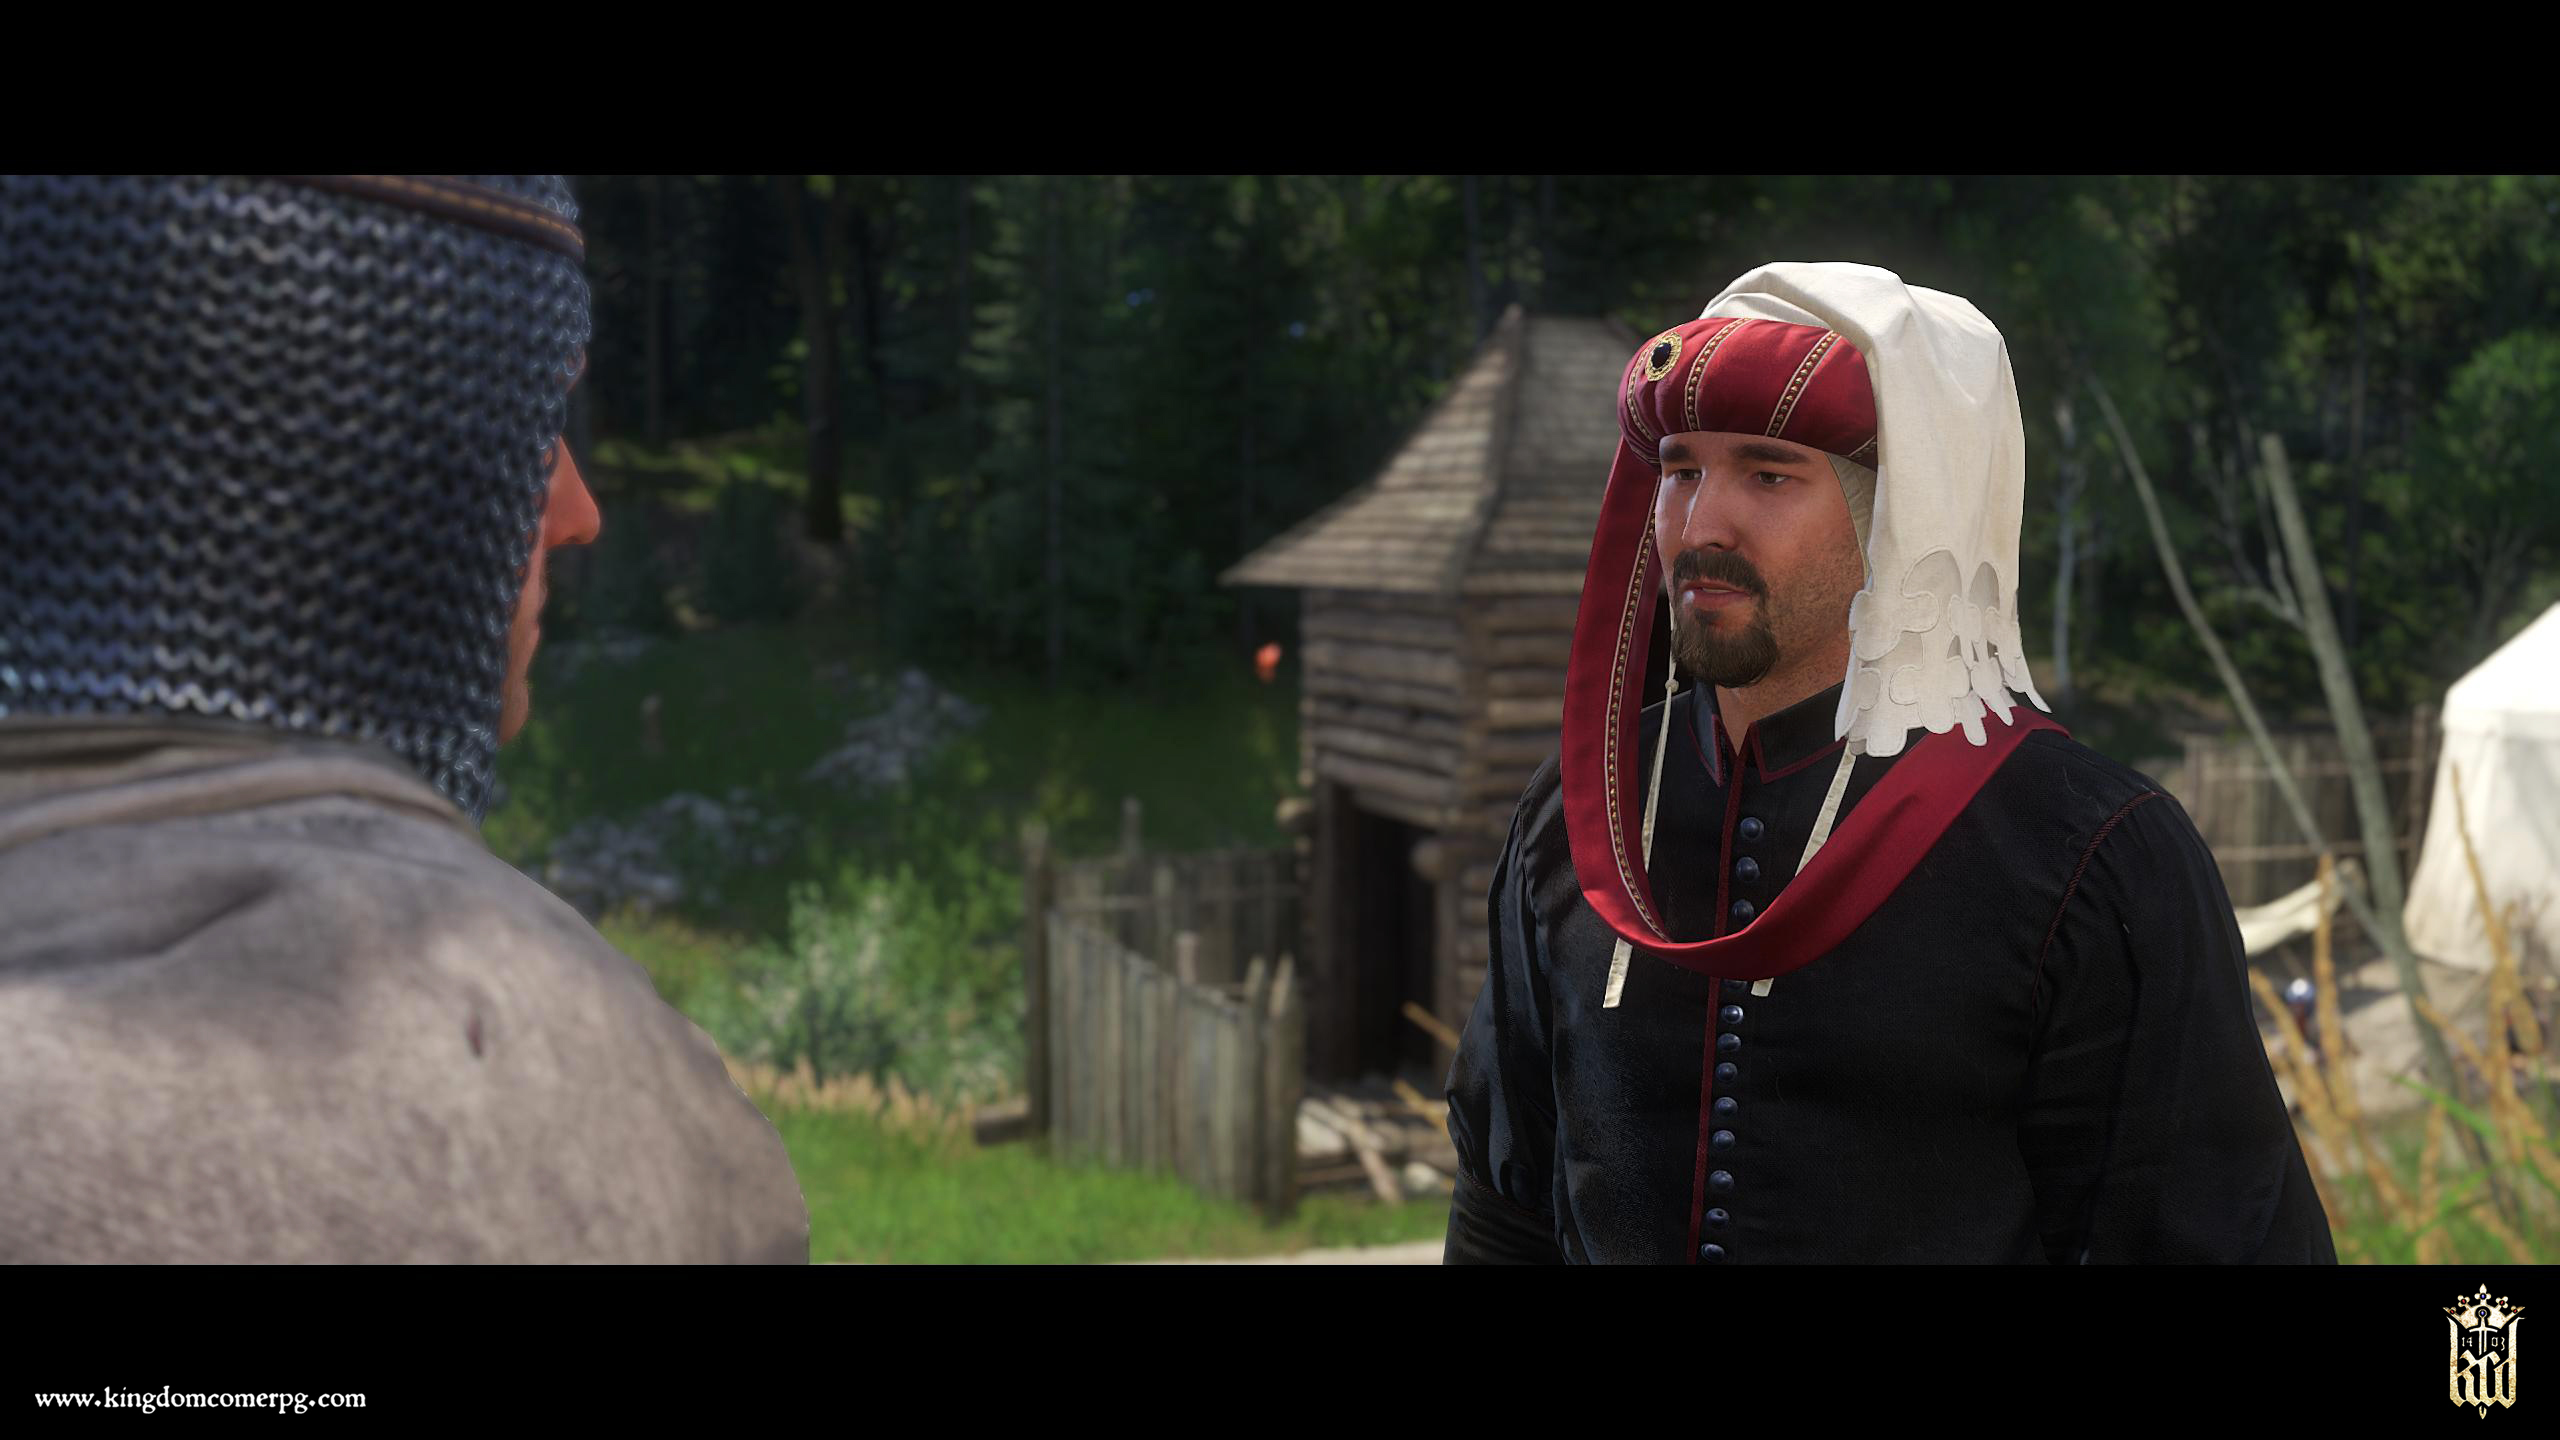 Kingdom Come Deliverance's first DLC turns game into a